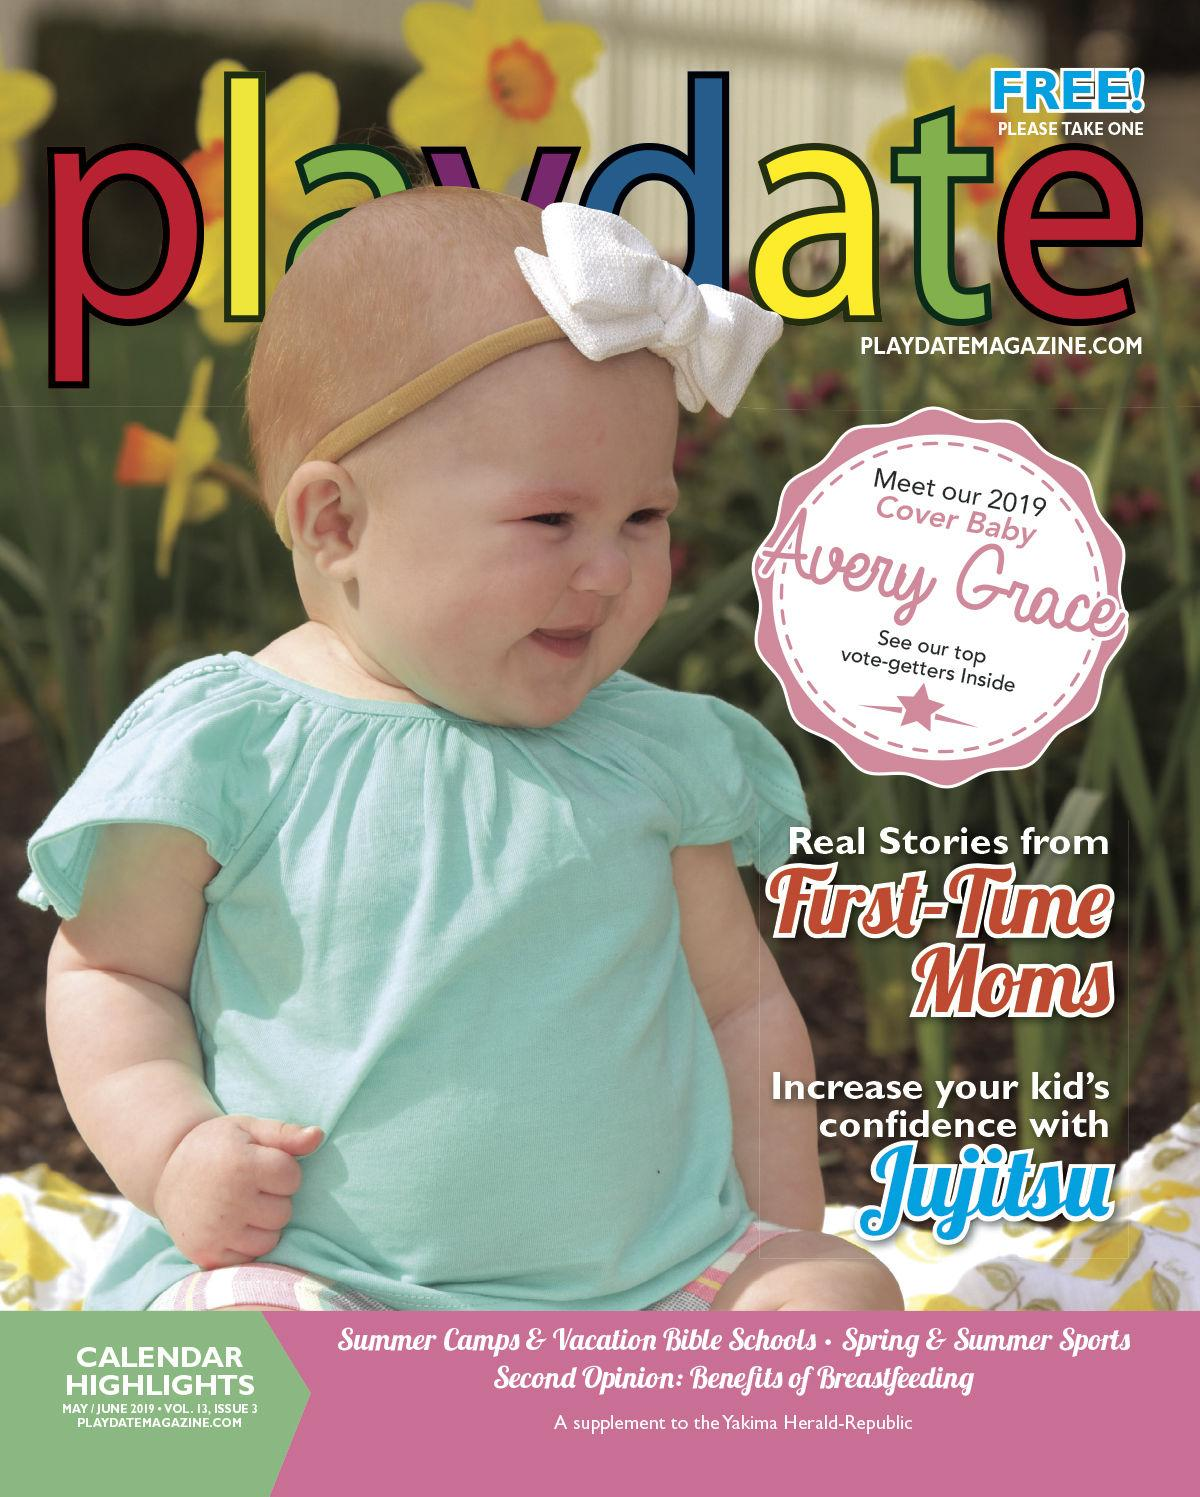 Meet Our 2019 Cover Baby: Avery Grace